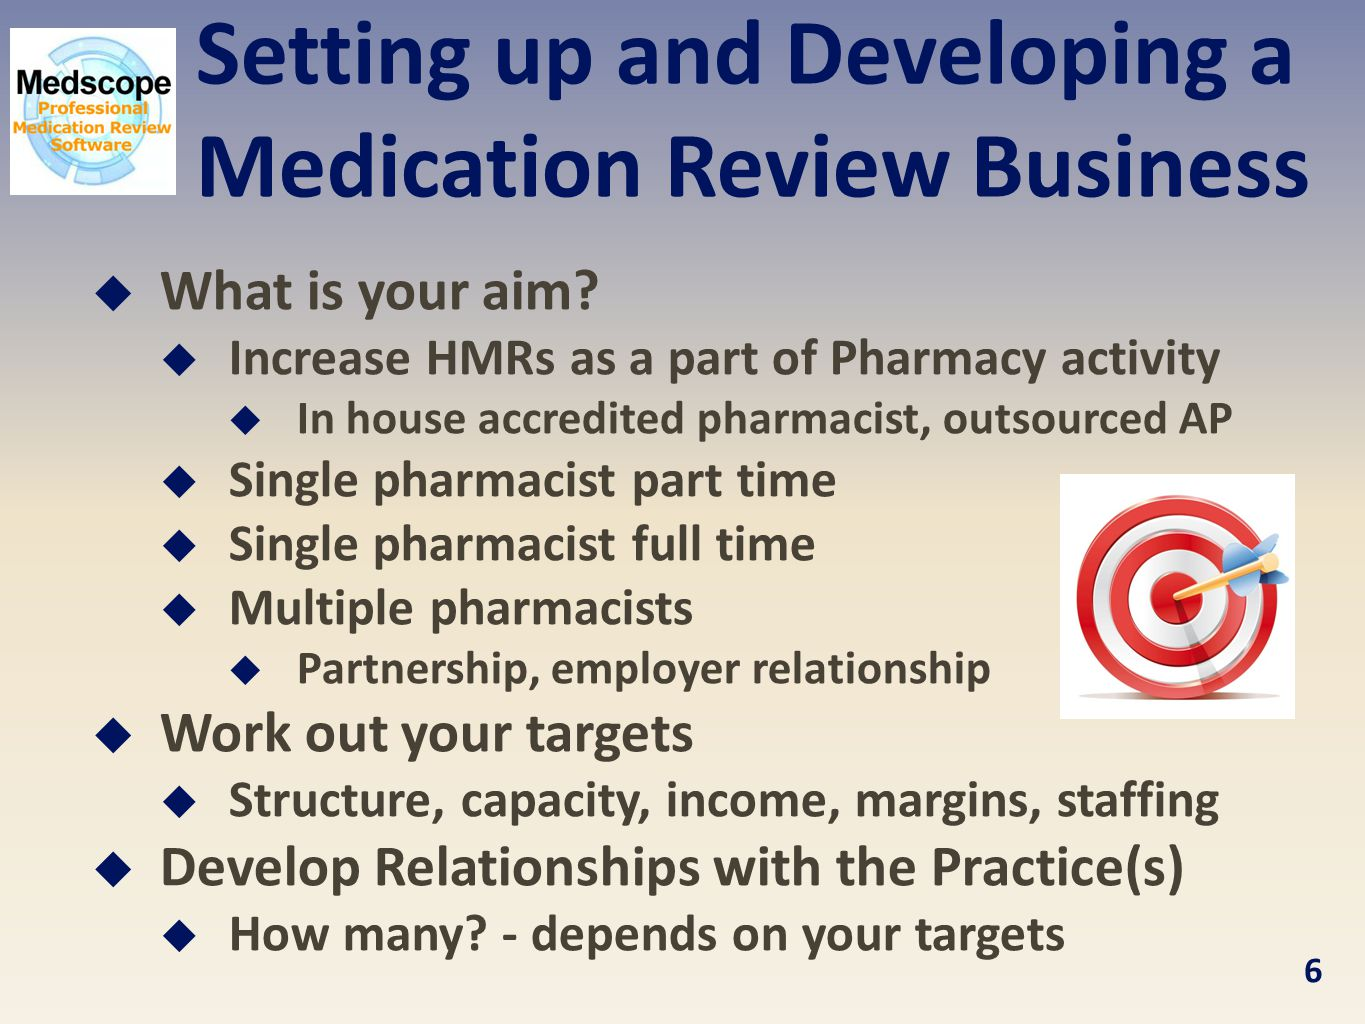 Setting up and Developing a Medication Review Business